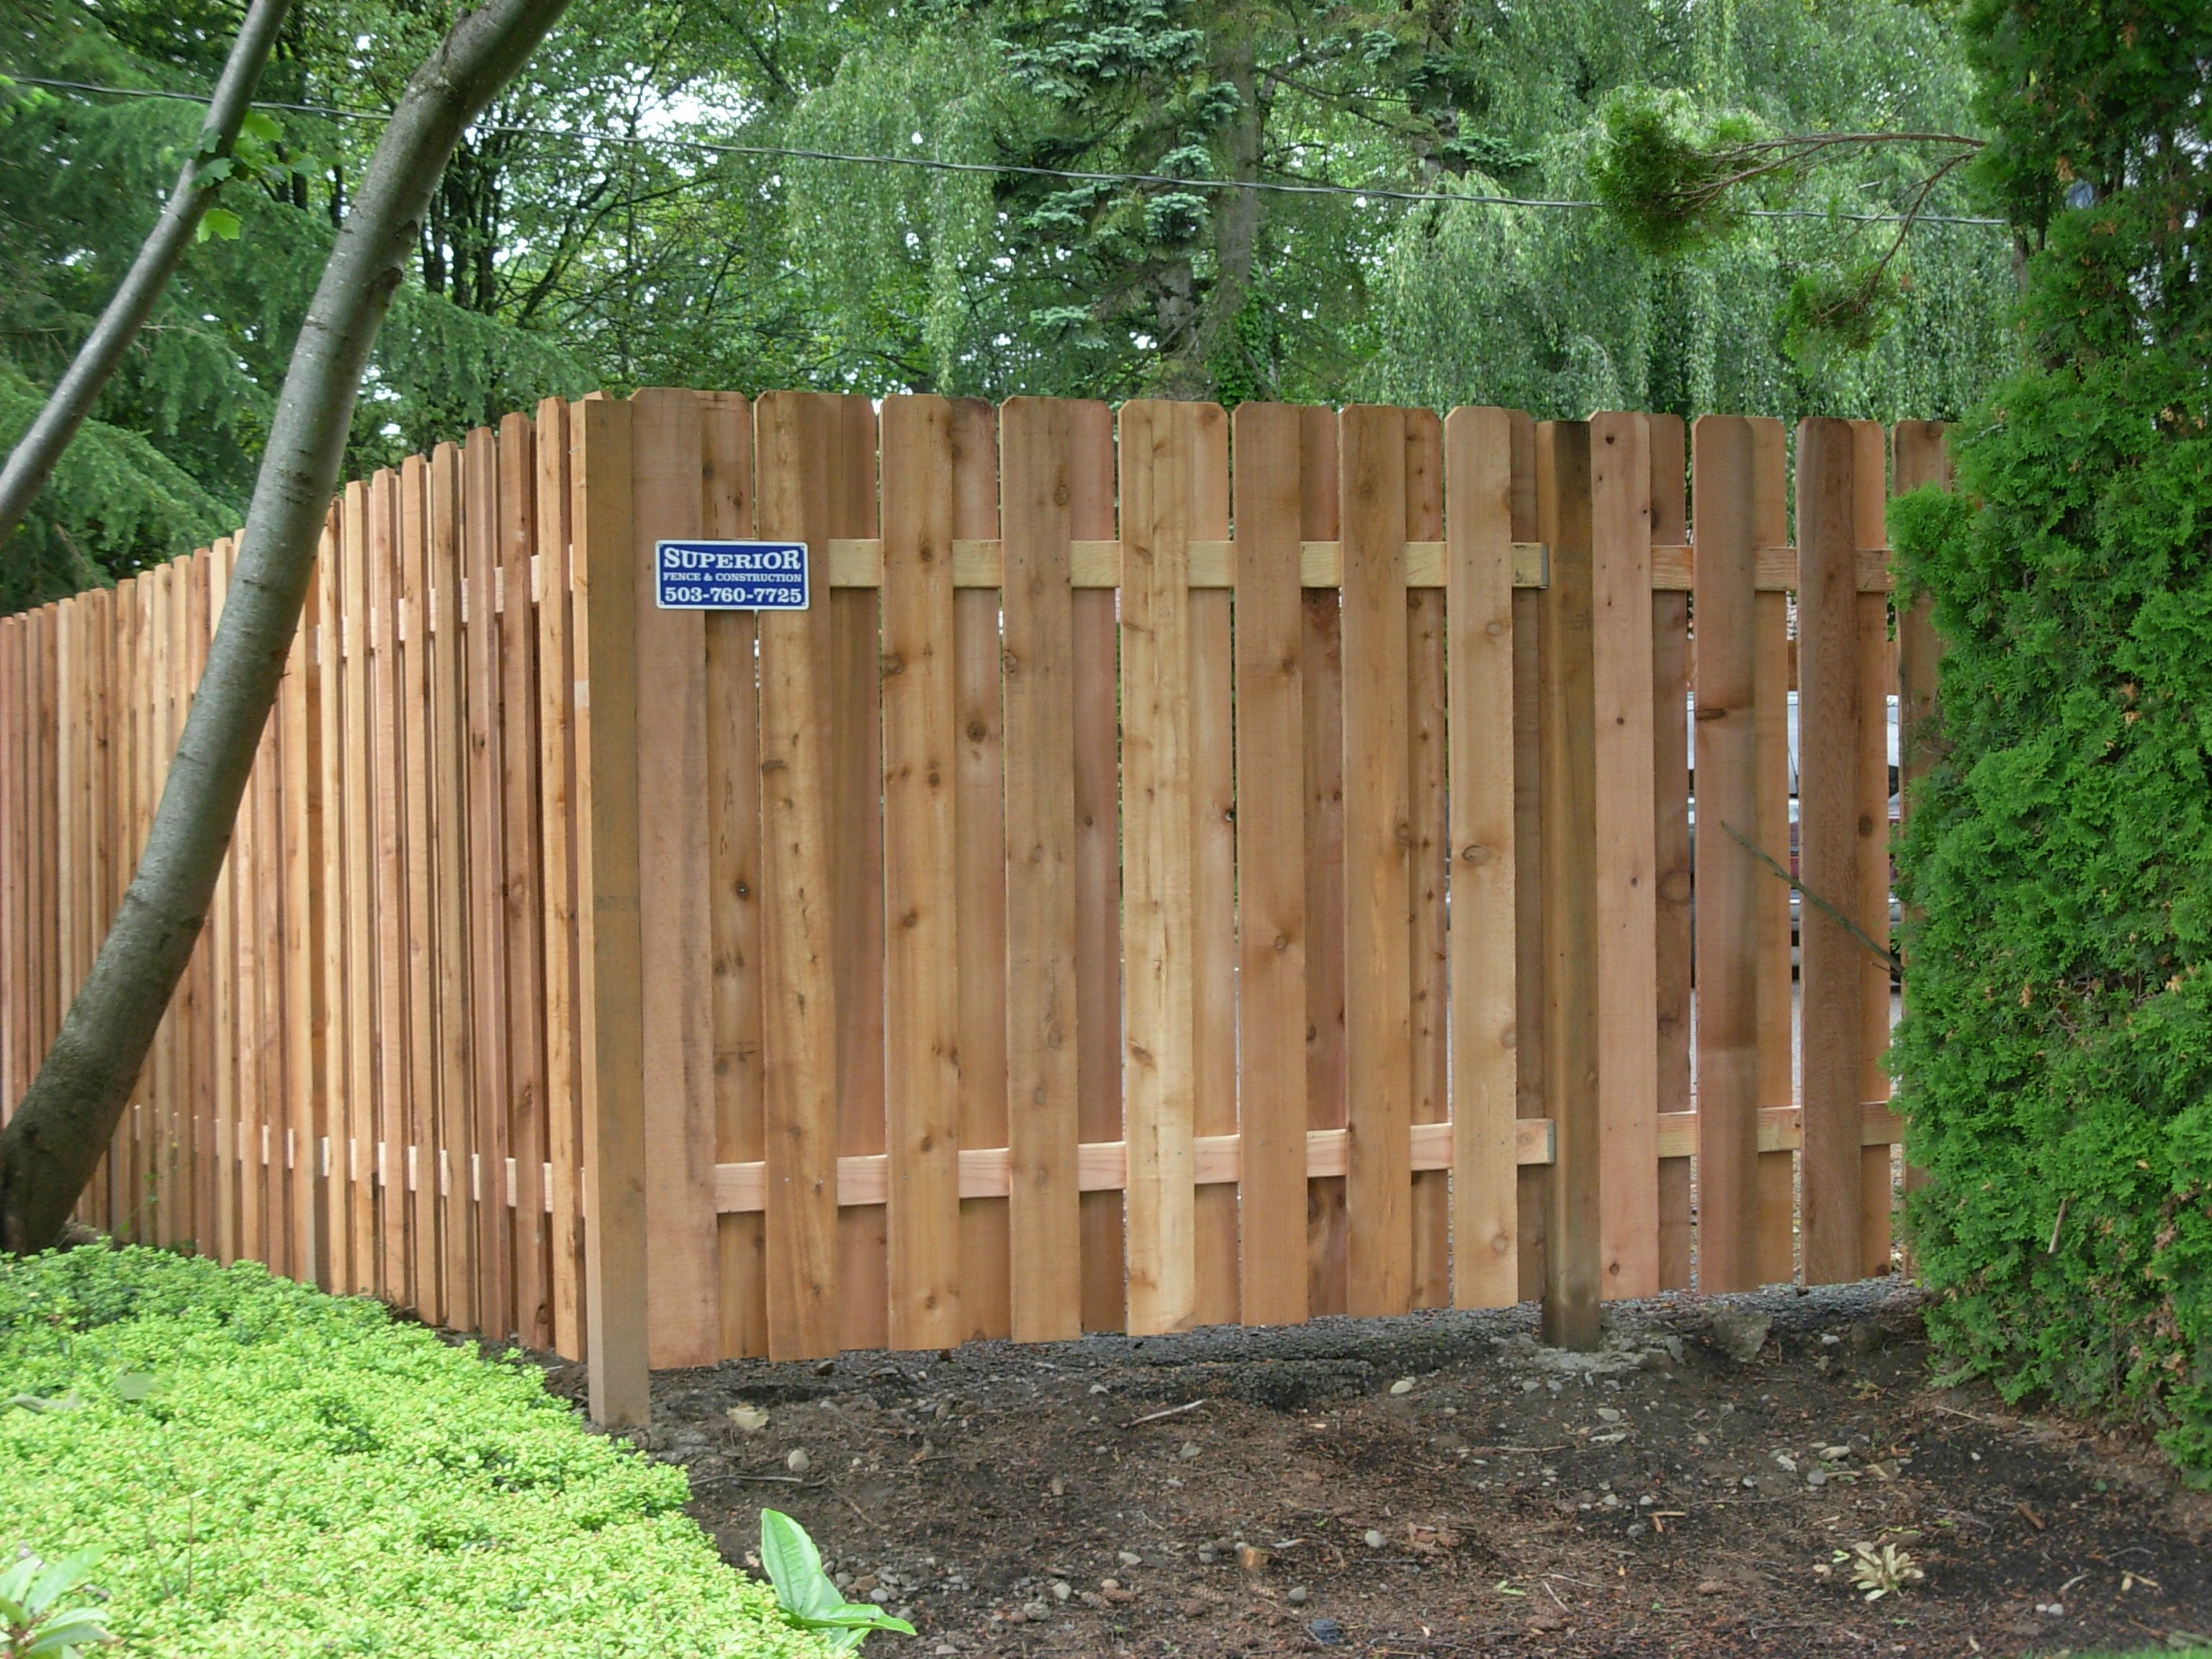 Alternating Boards Wood Fence 503 760 7725 Good